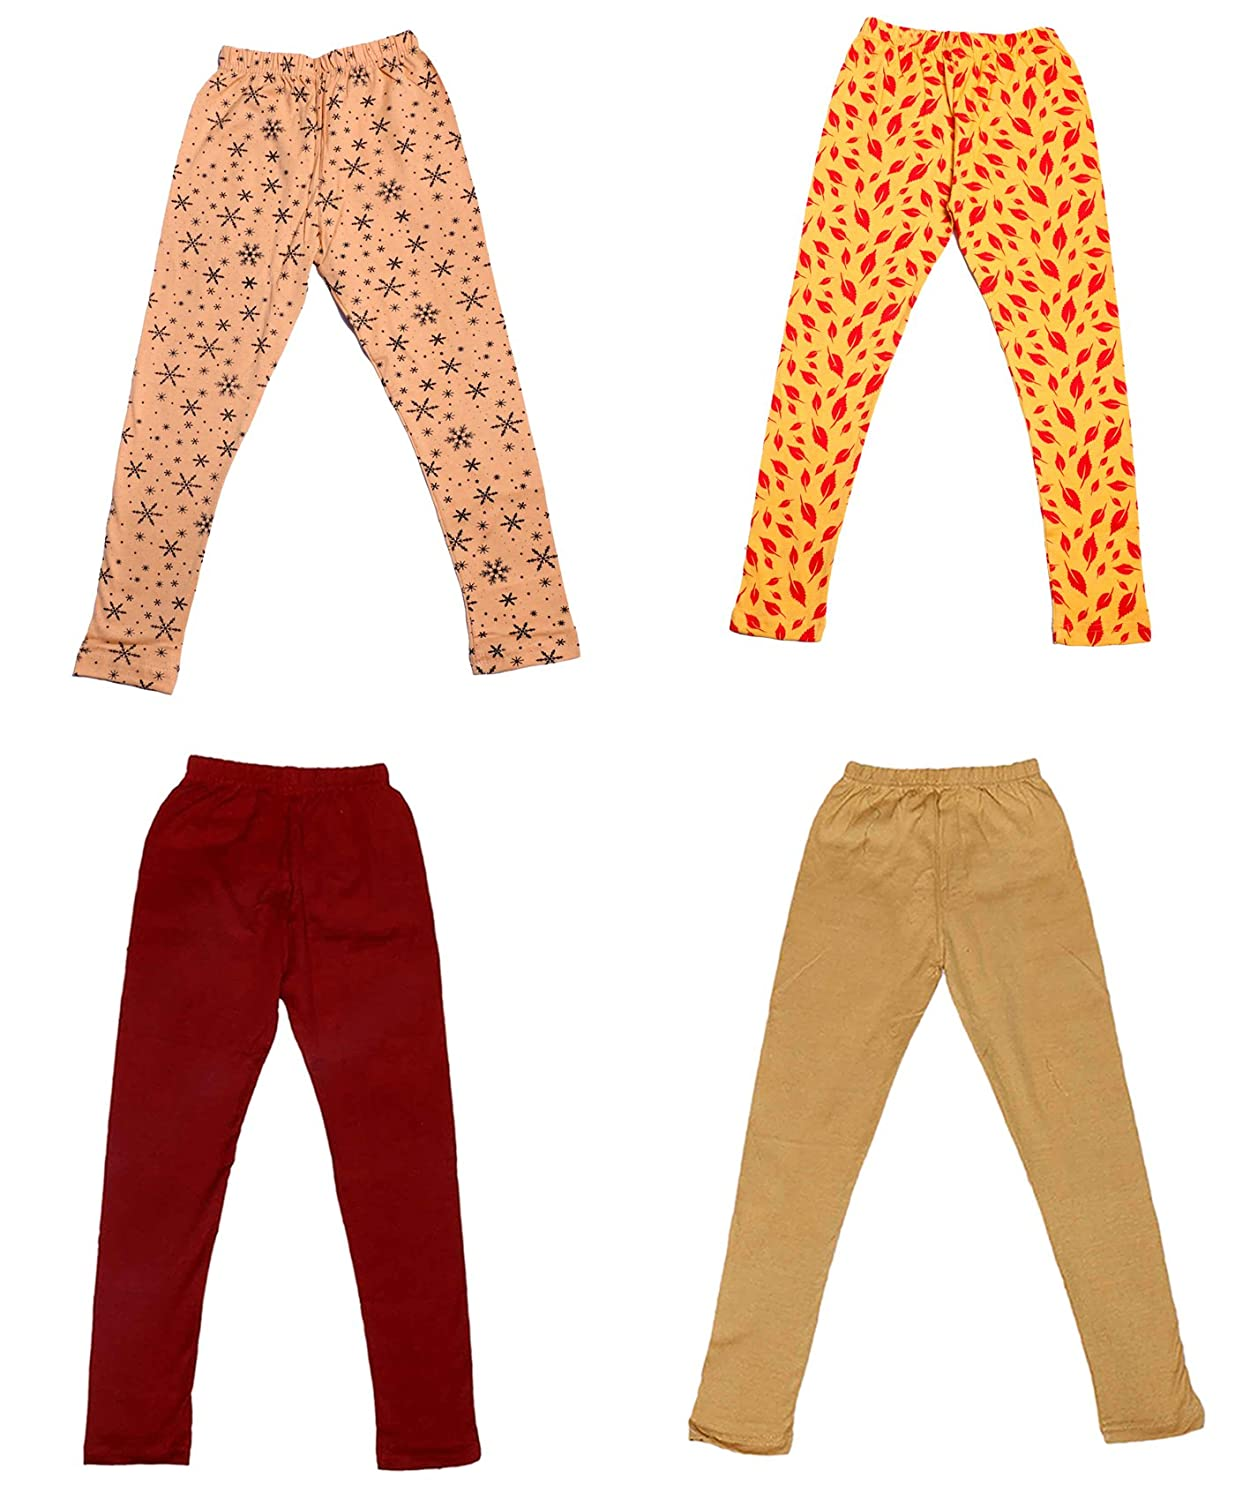 Pack Of 4 Indistar Girls 2 Cotton Solid Legging Pants and 2 Cotton Printed Legging Pants /_Multicolor/_Size-13-14 Years/_71400011819-IW-P4-36